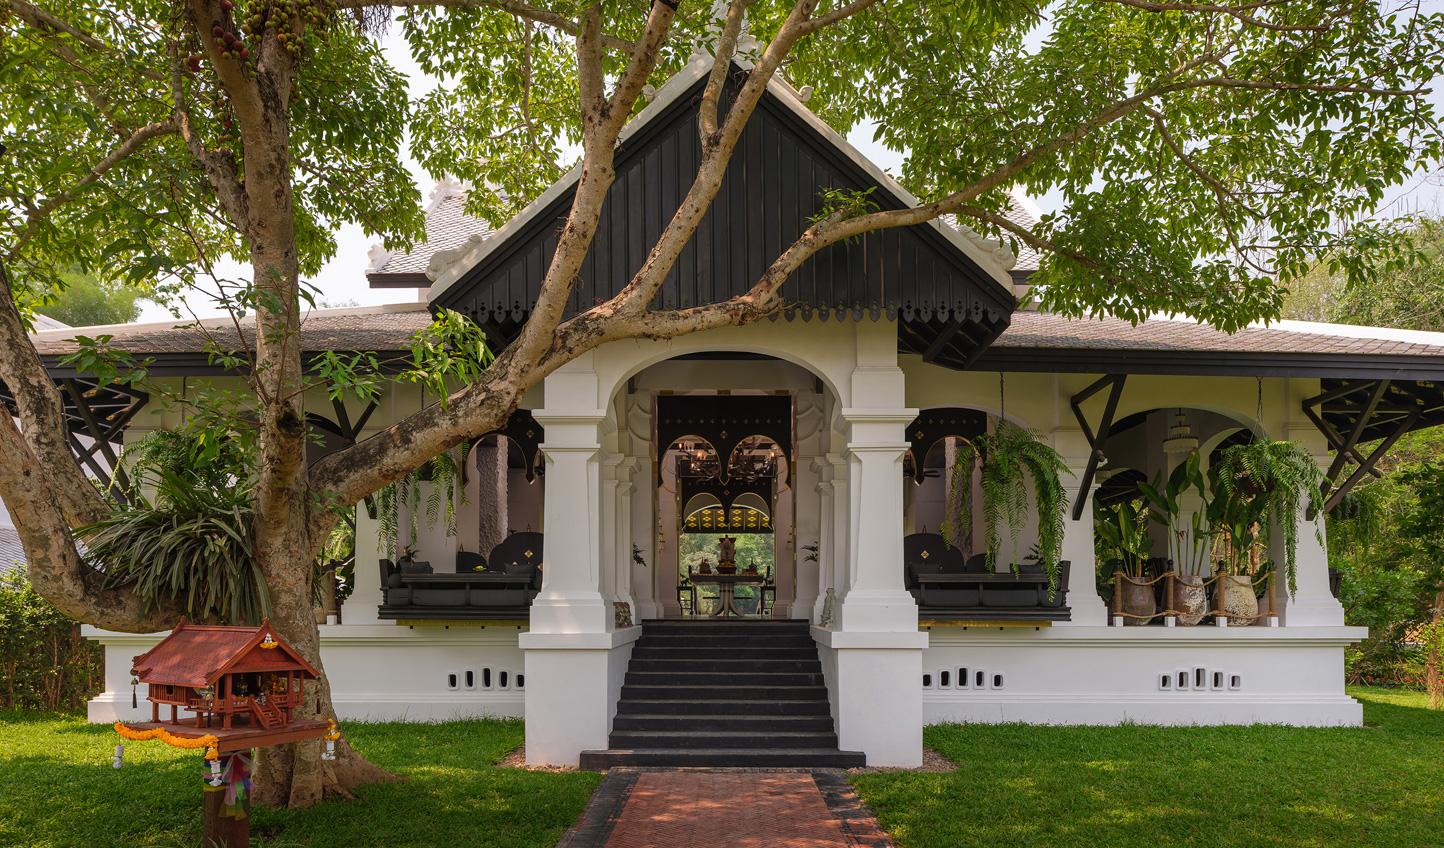 Ancient heritage has been given a modern update at Rosewood Luang Prabang